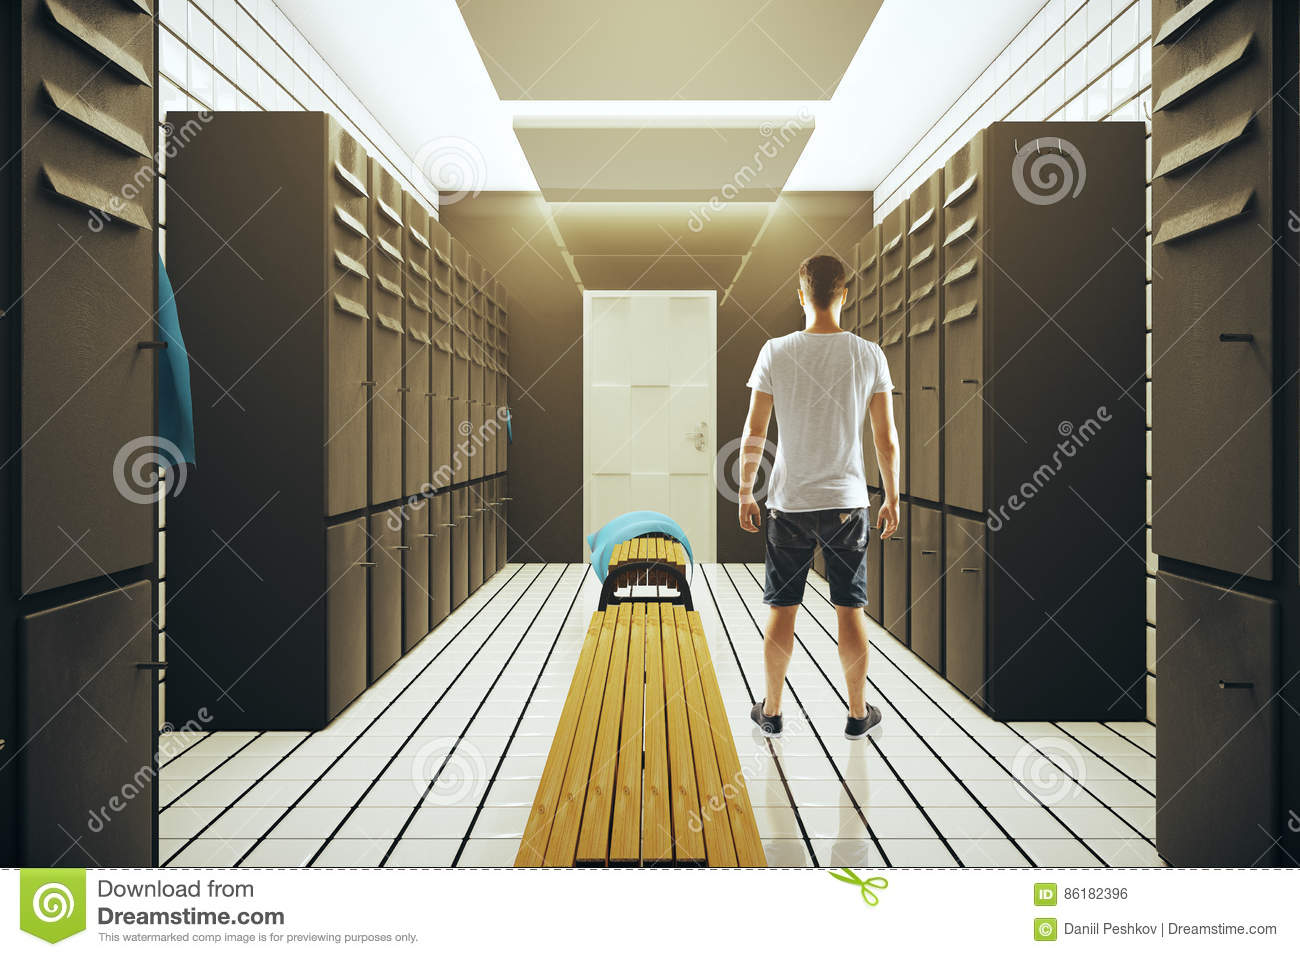 Athlete in changing room stock photo. image of loft protection